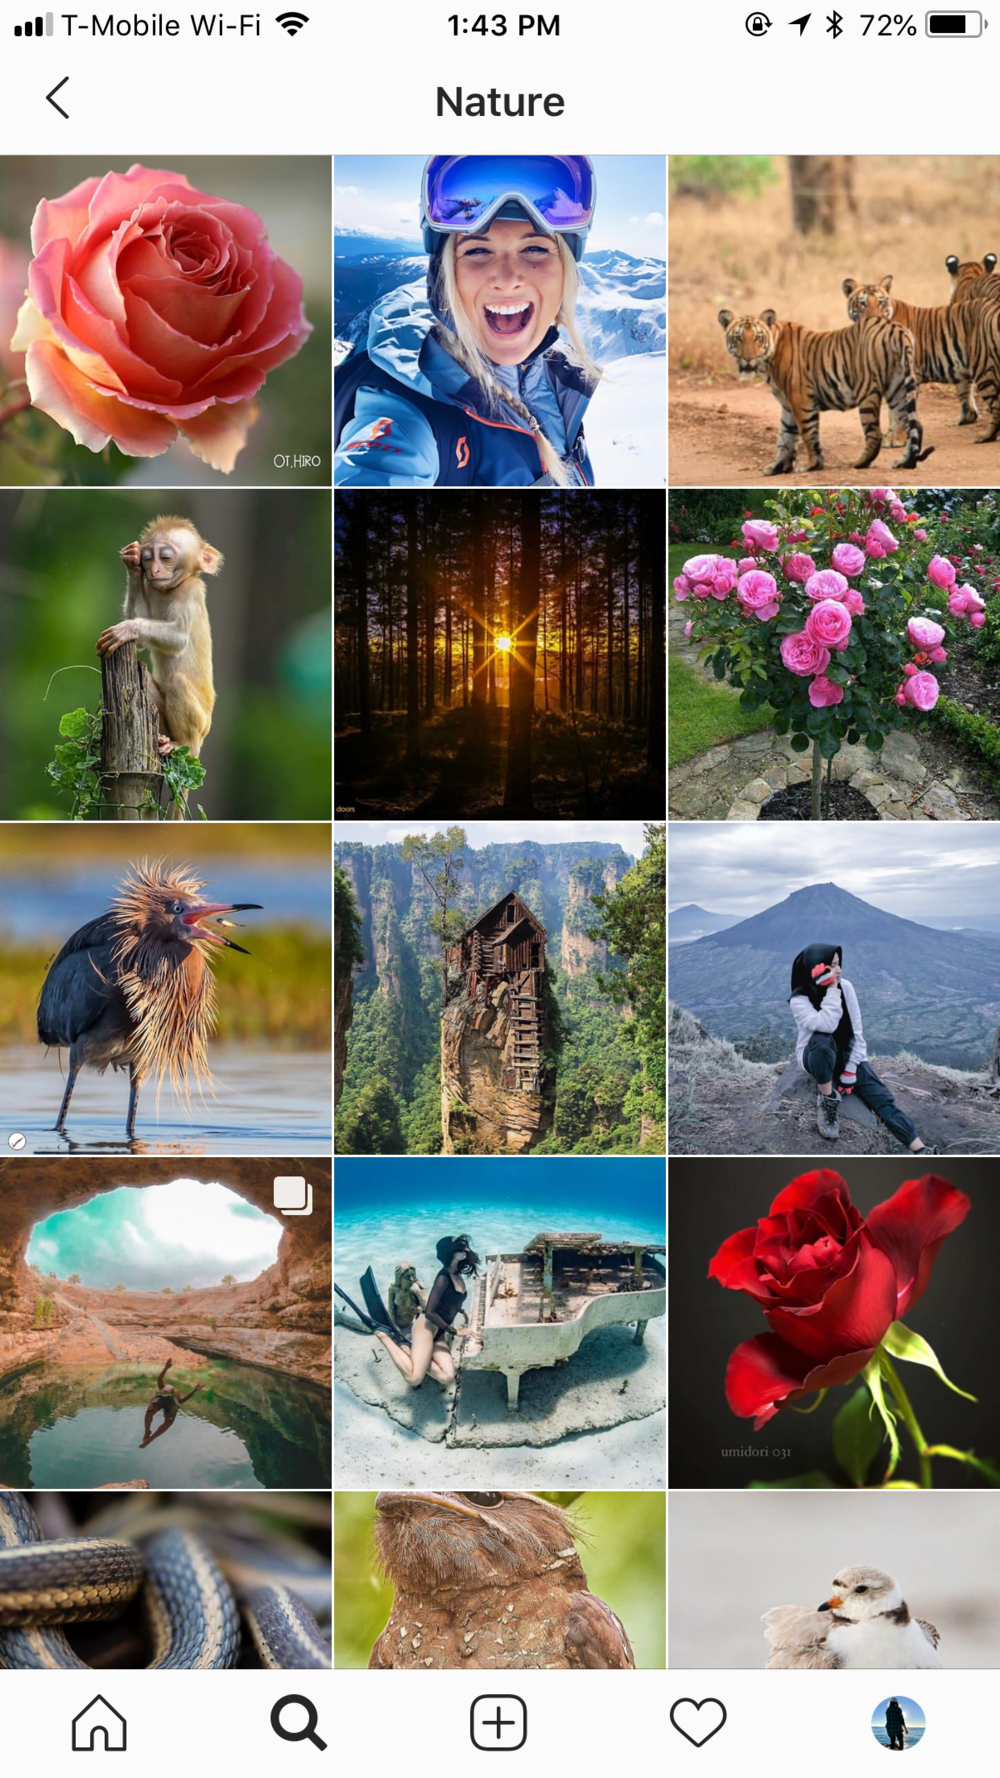 Nature Section of the Explore Tab